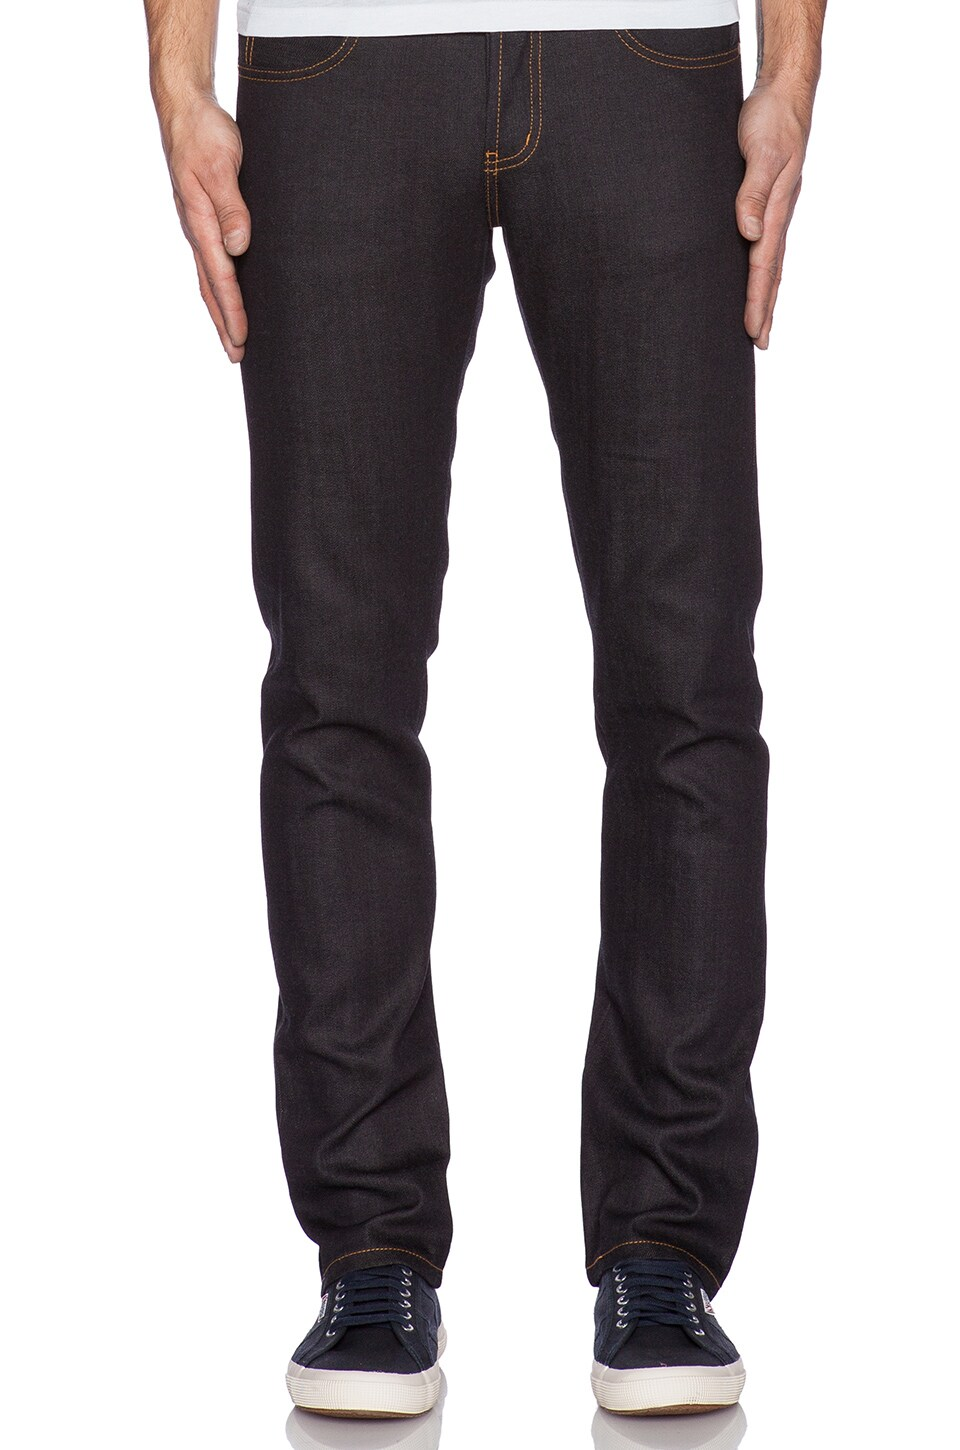 Super Skinny Guy Stretch Selvedge 11.5 oz. by Naked & Famous Denim